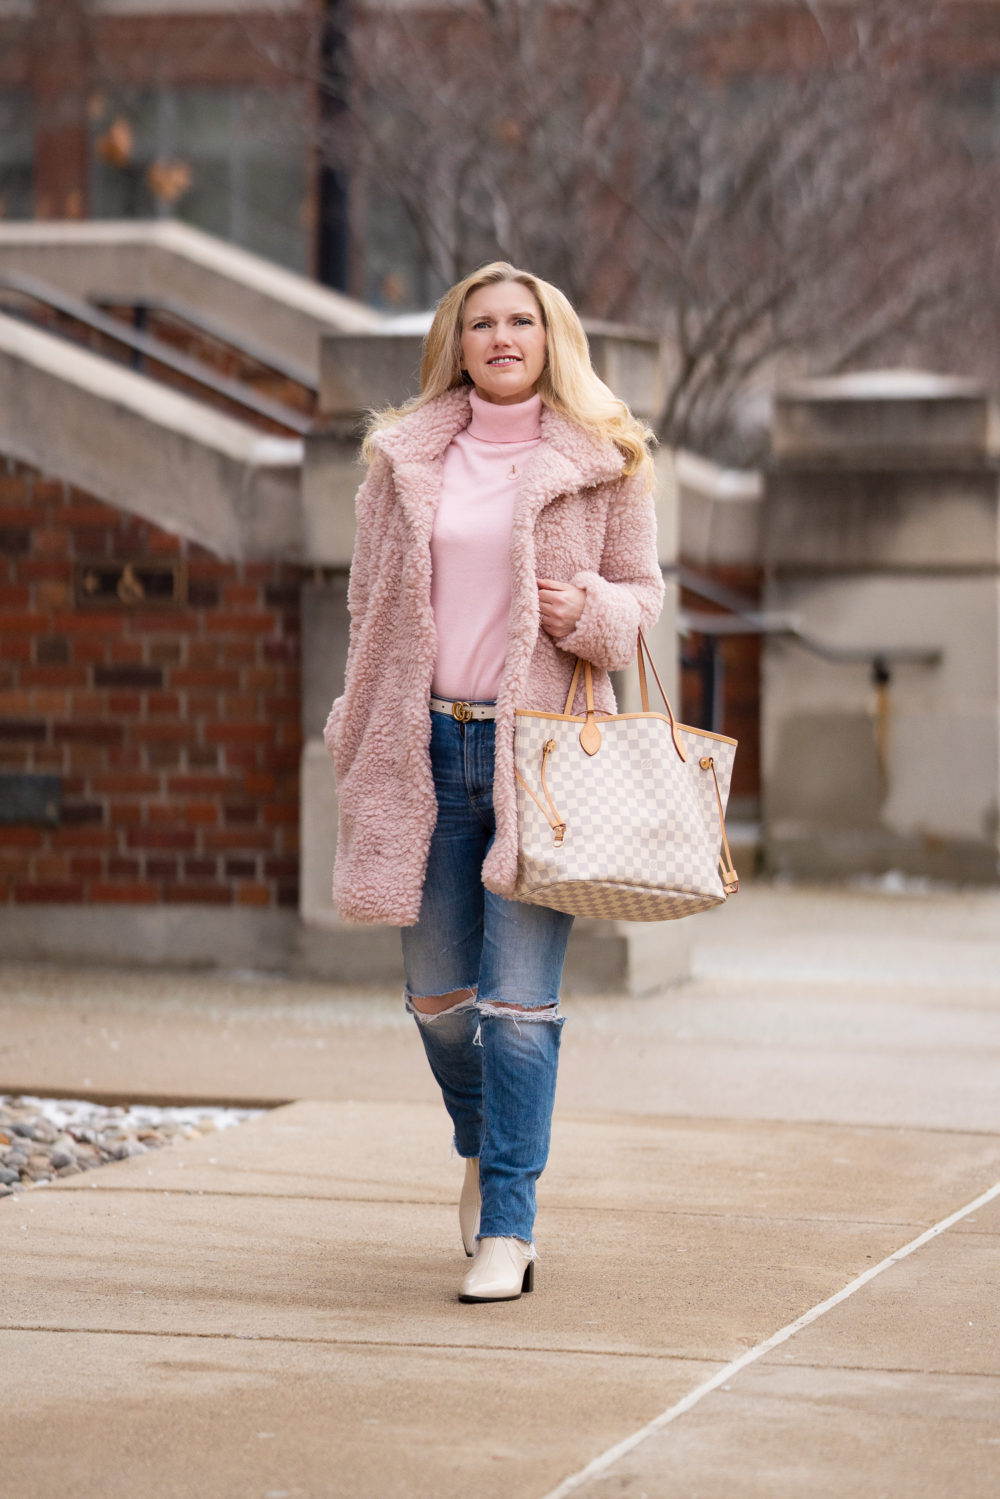 Petite Fashion Blog | Peach Copenhagen Coat | Louis Vuitton Neverfull Bag | Everlane Boots | Peach Clothing